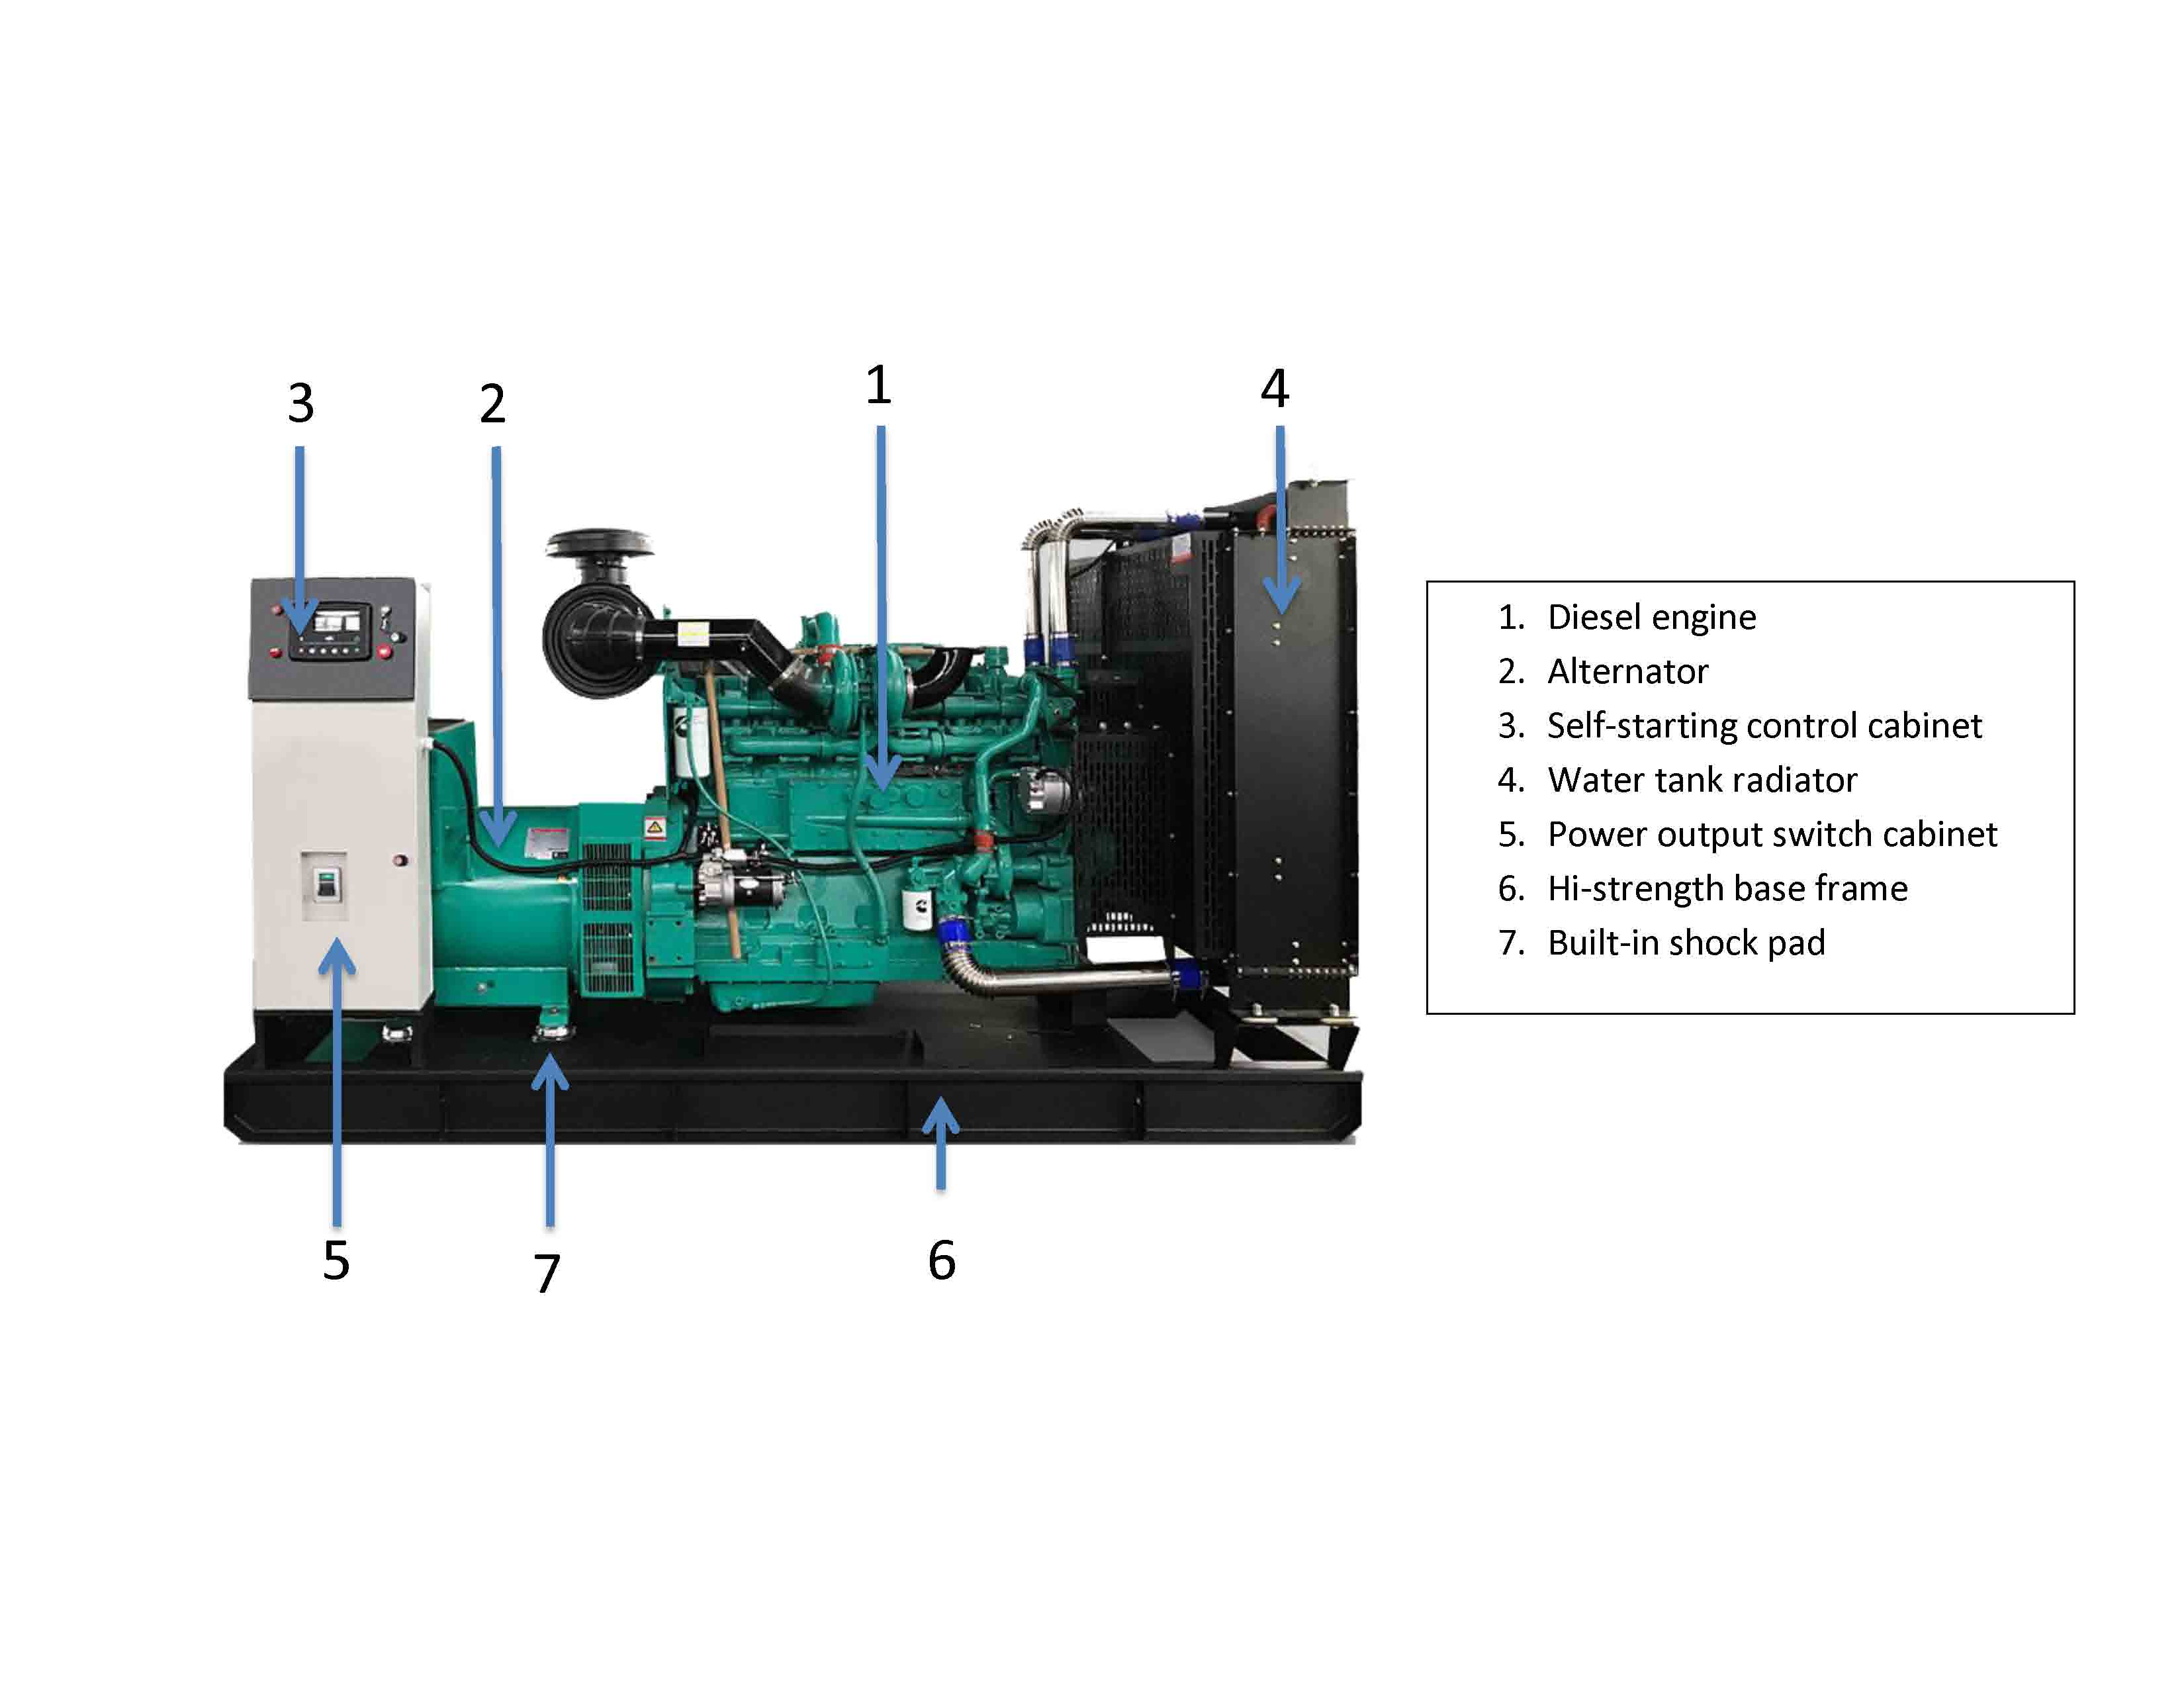 Onan Generator Frame Propane Wiring Diagram Location Of Diagrams Guards Trusted Hamze Co Microquiet 3300x2550